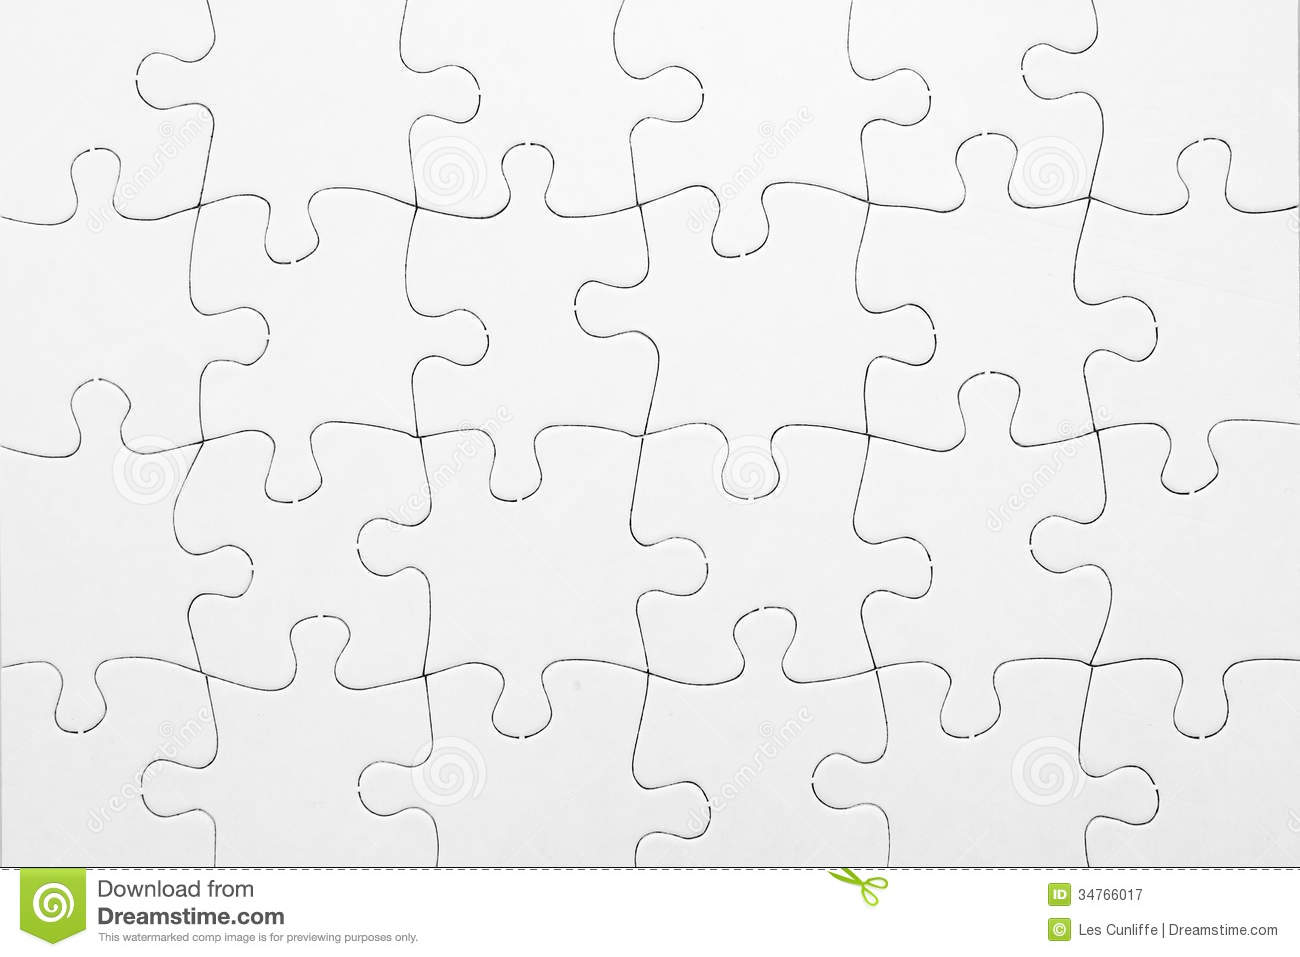 Puzzle Royalty Free Stock Photography - Image: 34766017: www.dreamstime.com/royalty-free-stock-photography-puzzle-closeup...